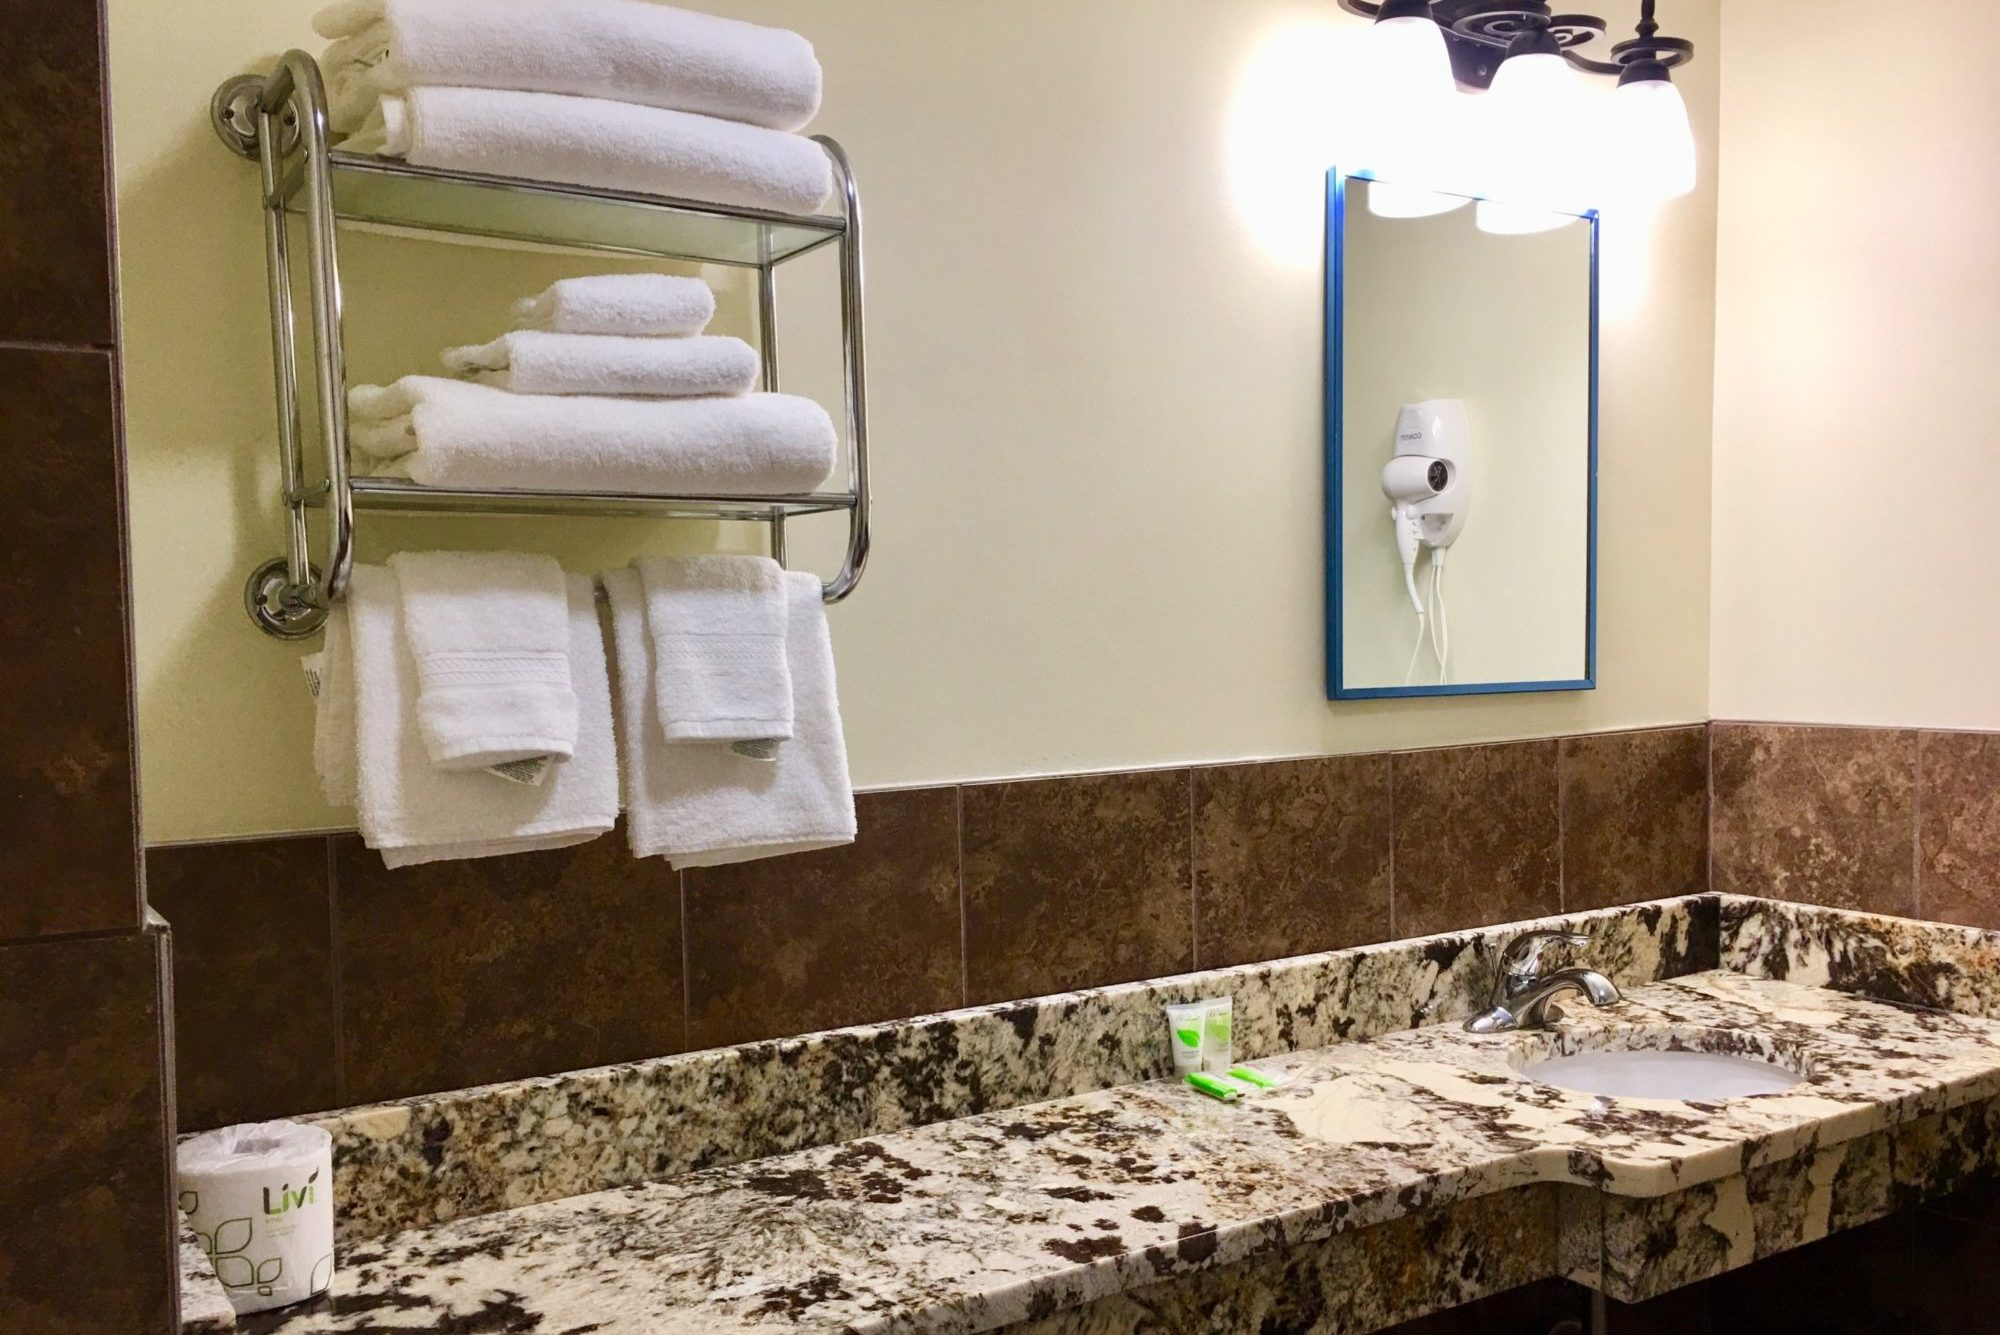 vanity unit, shelves with towels, mirror with overhead lights